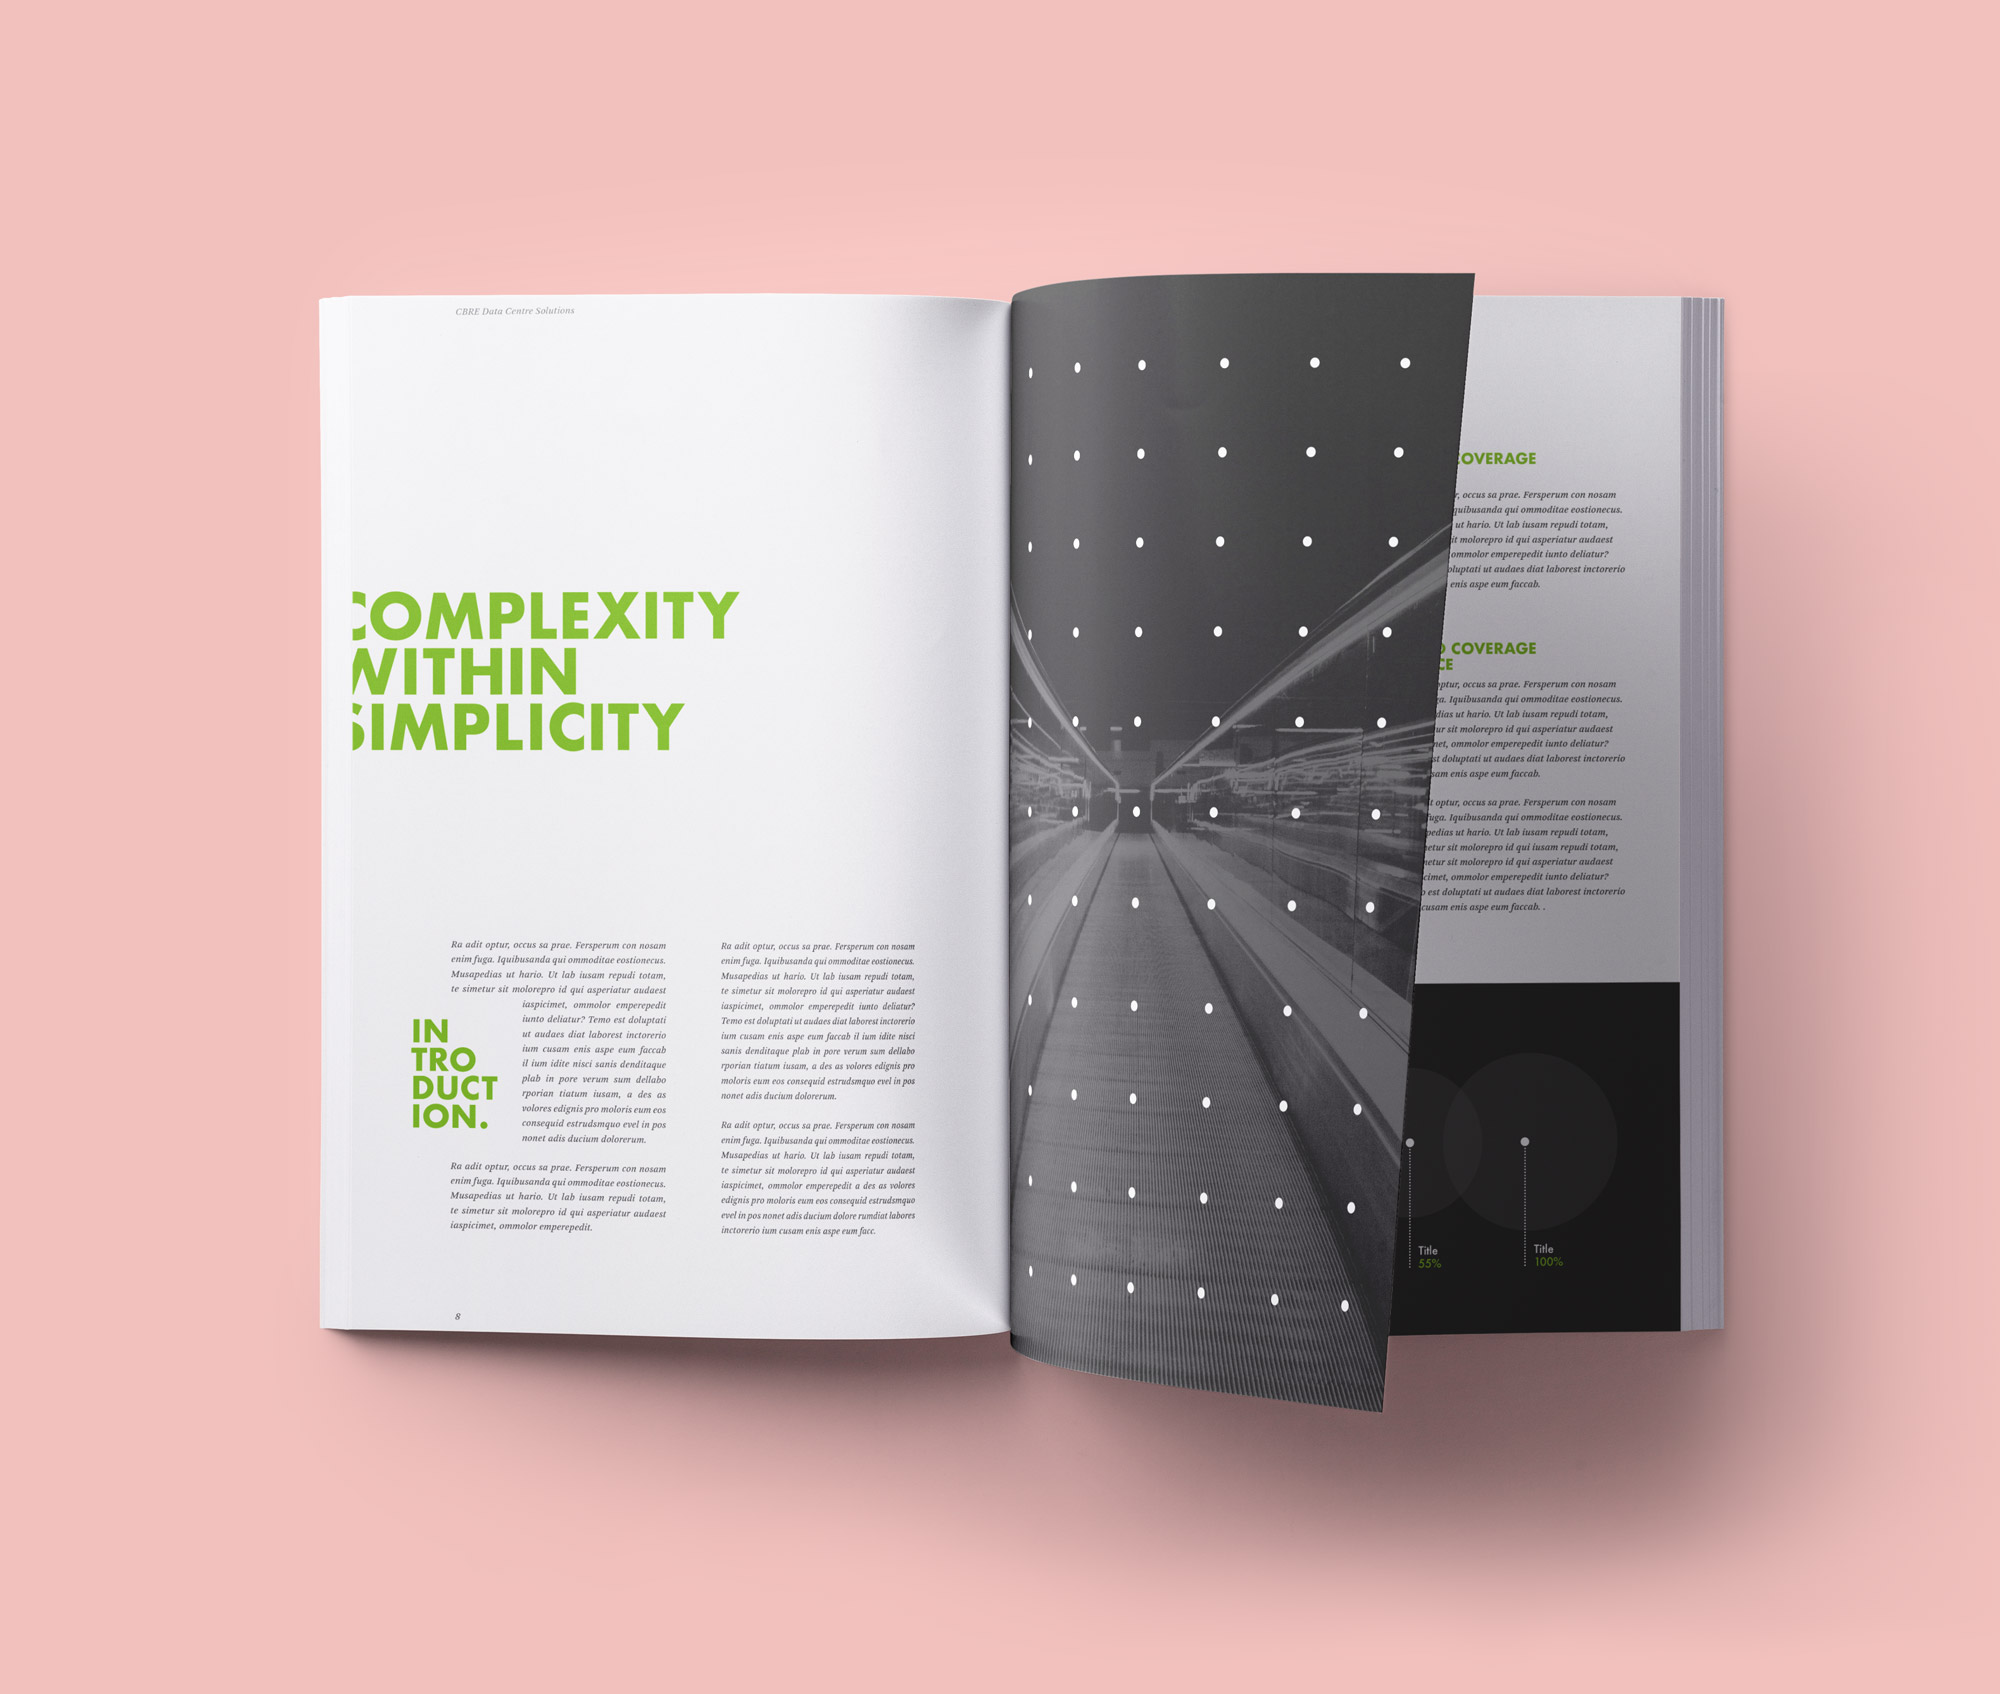 Hamilton-Brown CBRE Book spread